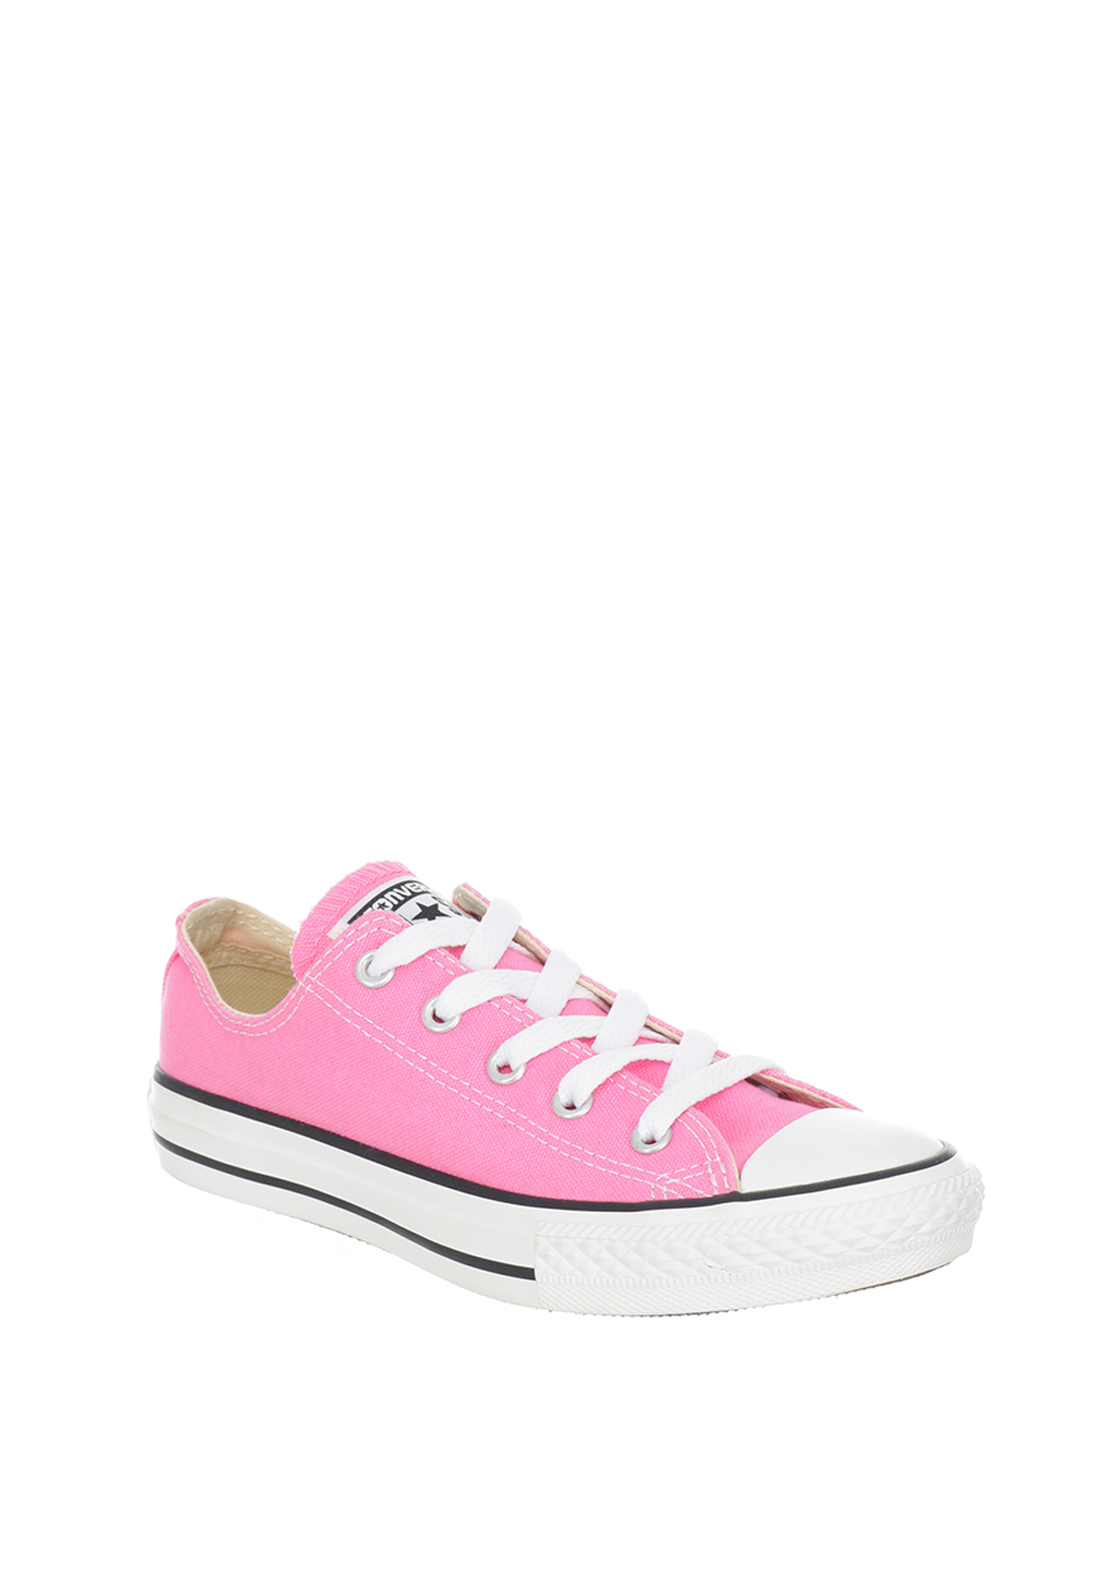 Converse Baby Girl All-Star Ox Low Trainers, Pink